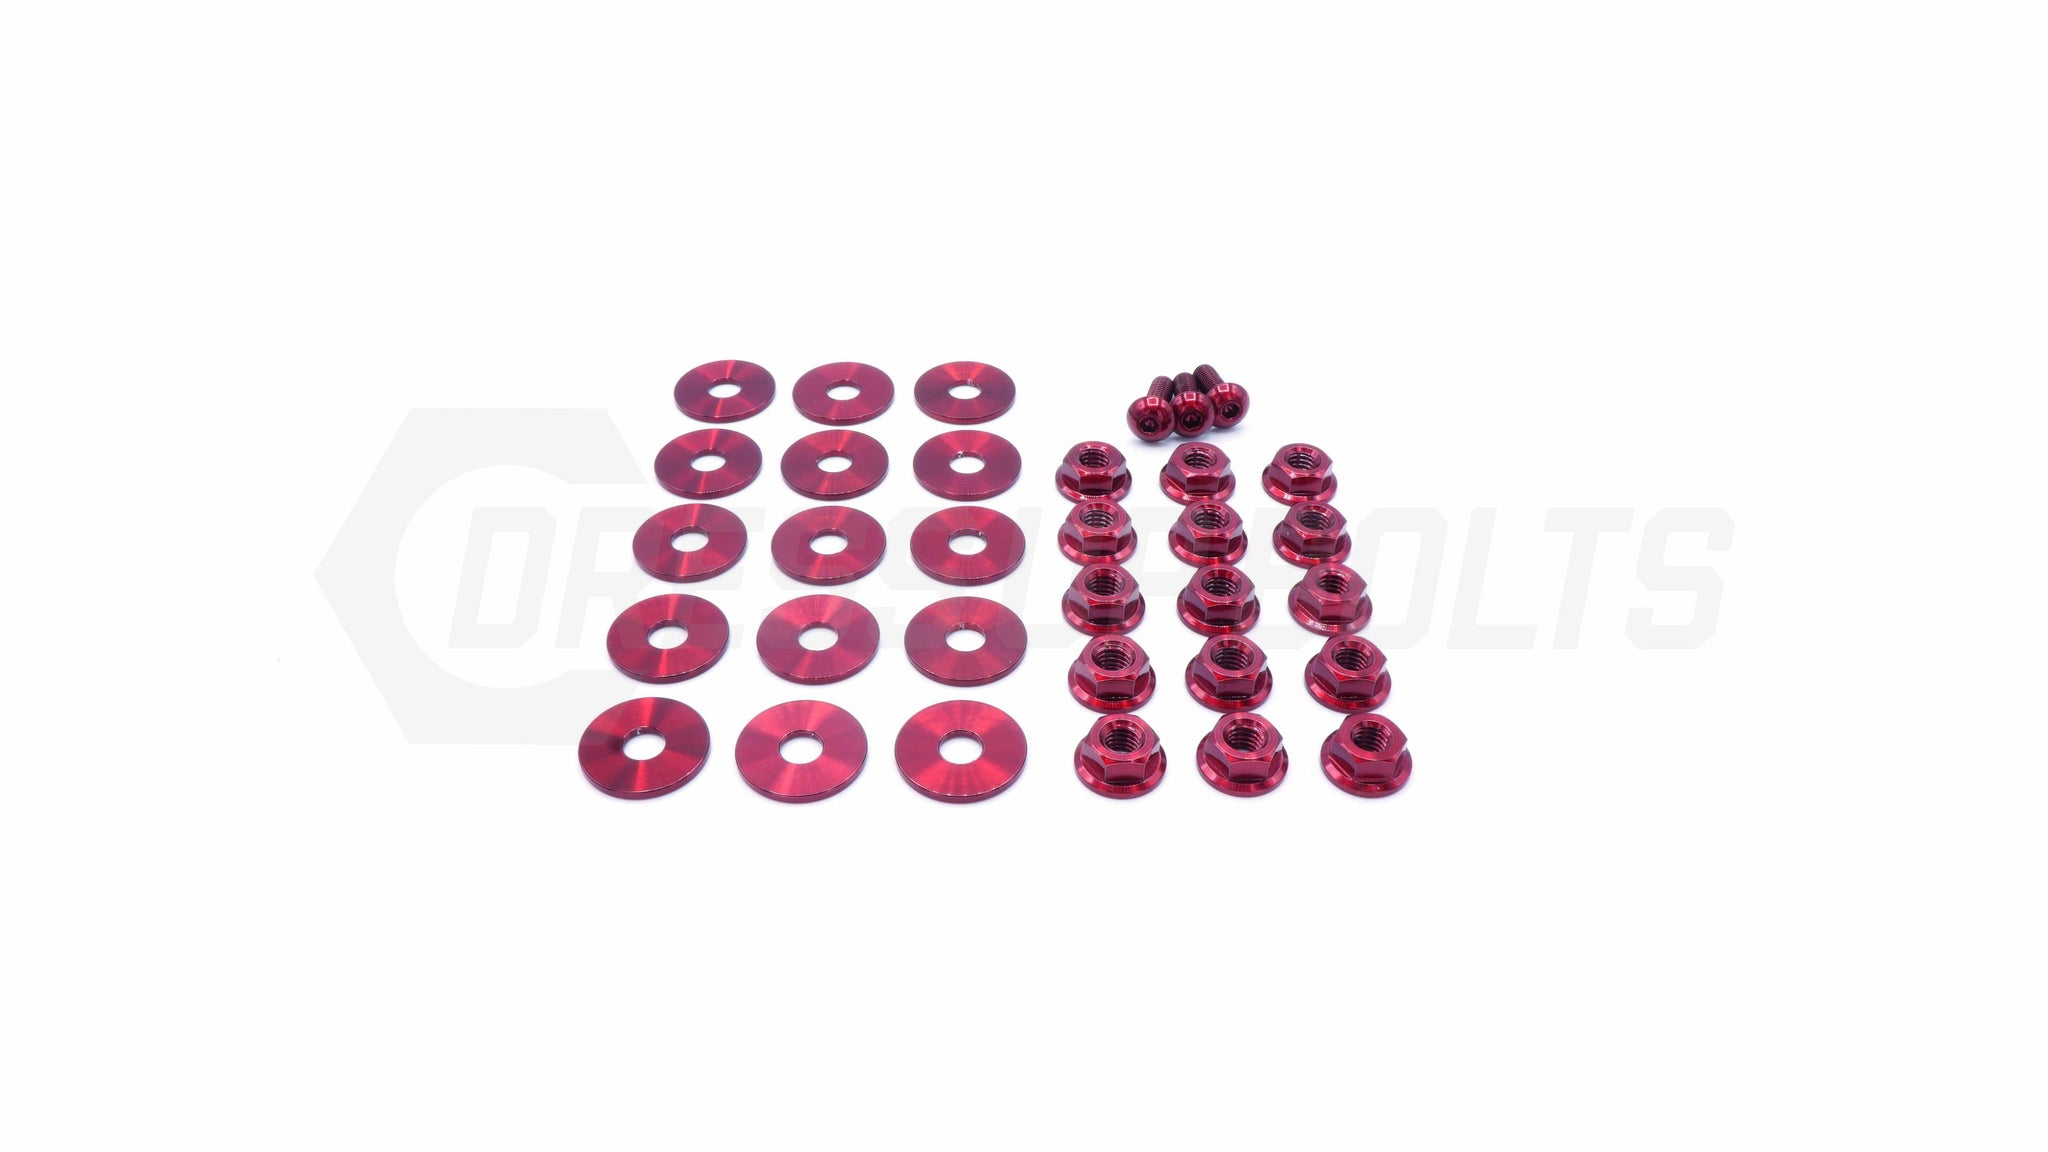 Dress Up Bolts Titanium Hardware Valve Cover Kit - SR20DET VTC - DressUpBolts.com